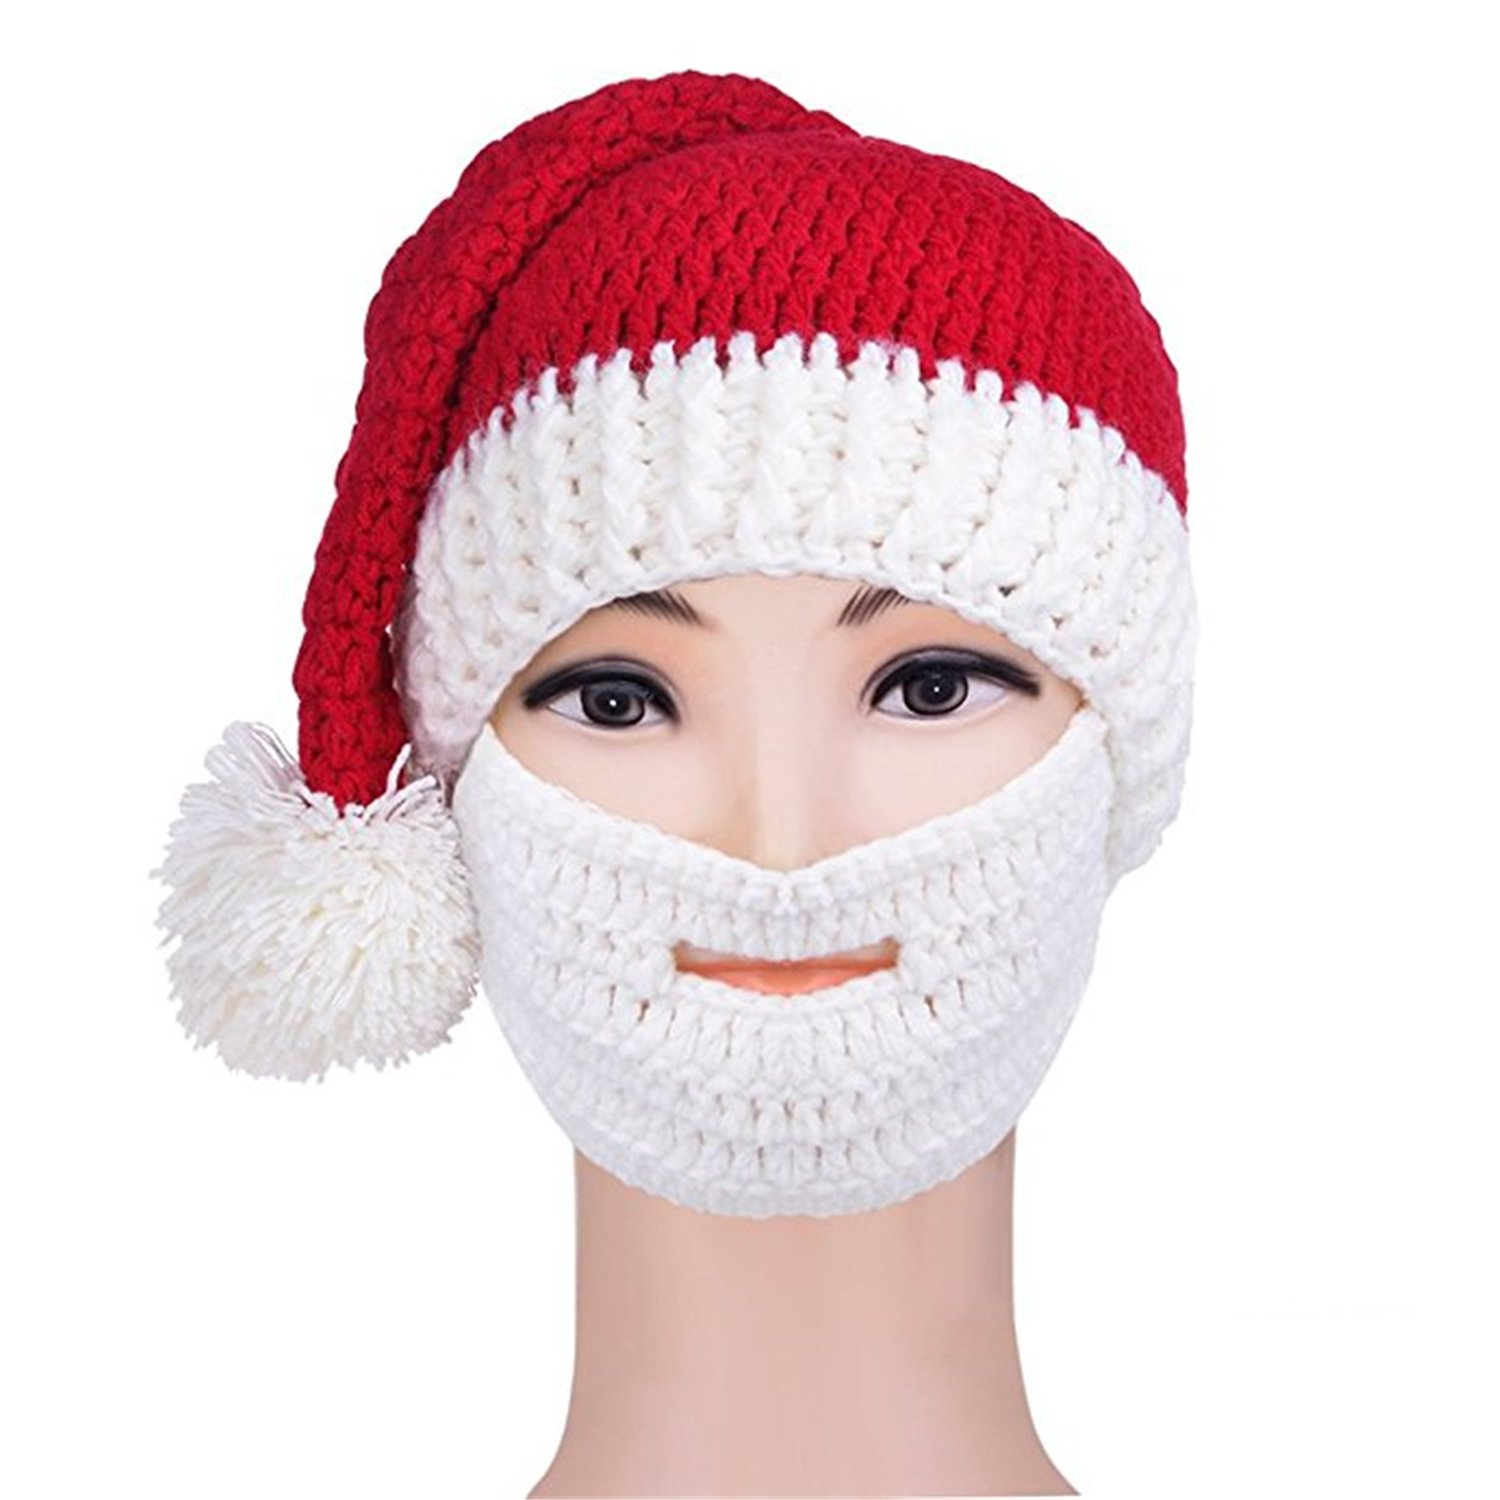 ffbce98d2f7 Santa Claus Beard Hat Beanie Hat Knit Hat Winter Warm Octopus Hat Windproof  Funny for Men   Women (A)  Amazon.ca  Clothing   Accessories